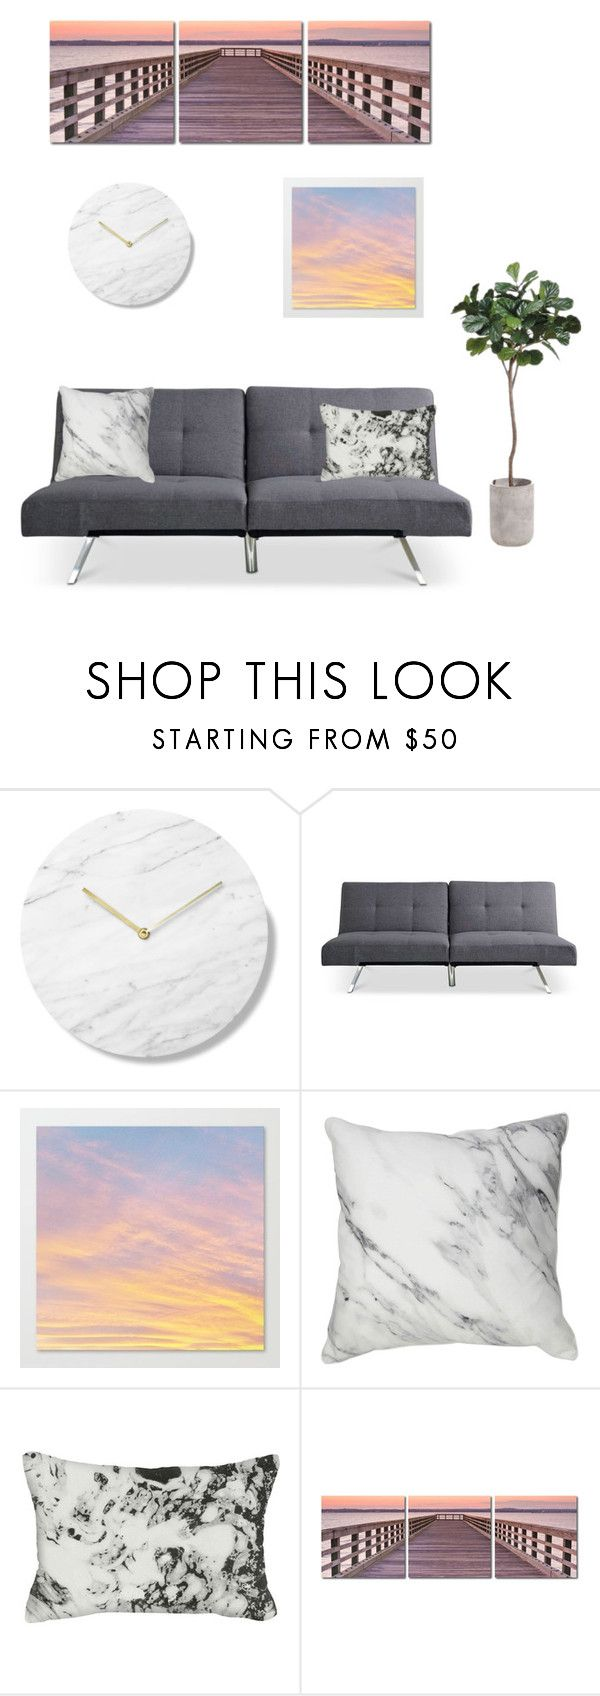 """""""Untitled #2"""" by sienna-waller ❤ liked on Polyvore featuring interior, interiors, interior design, home, home decor and interior decorating"""